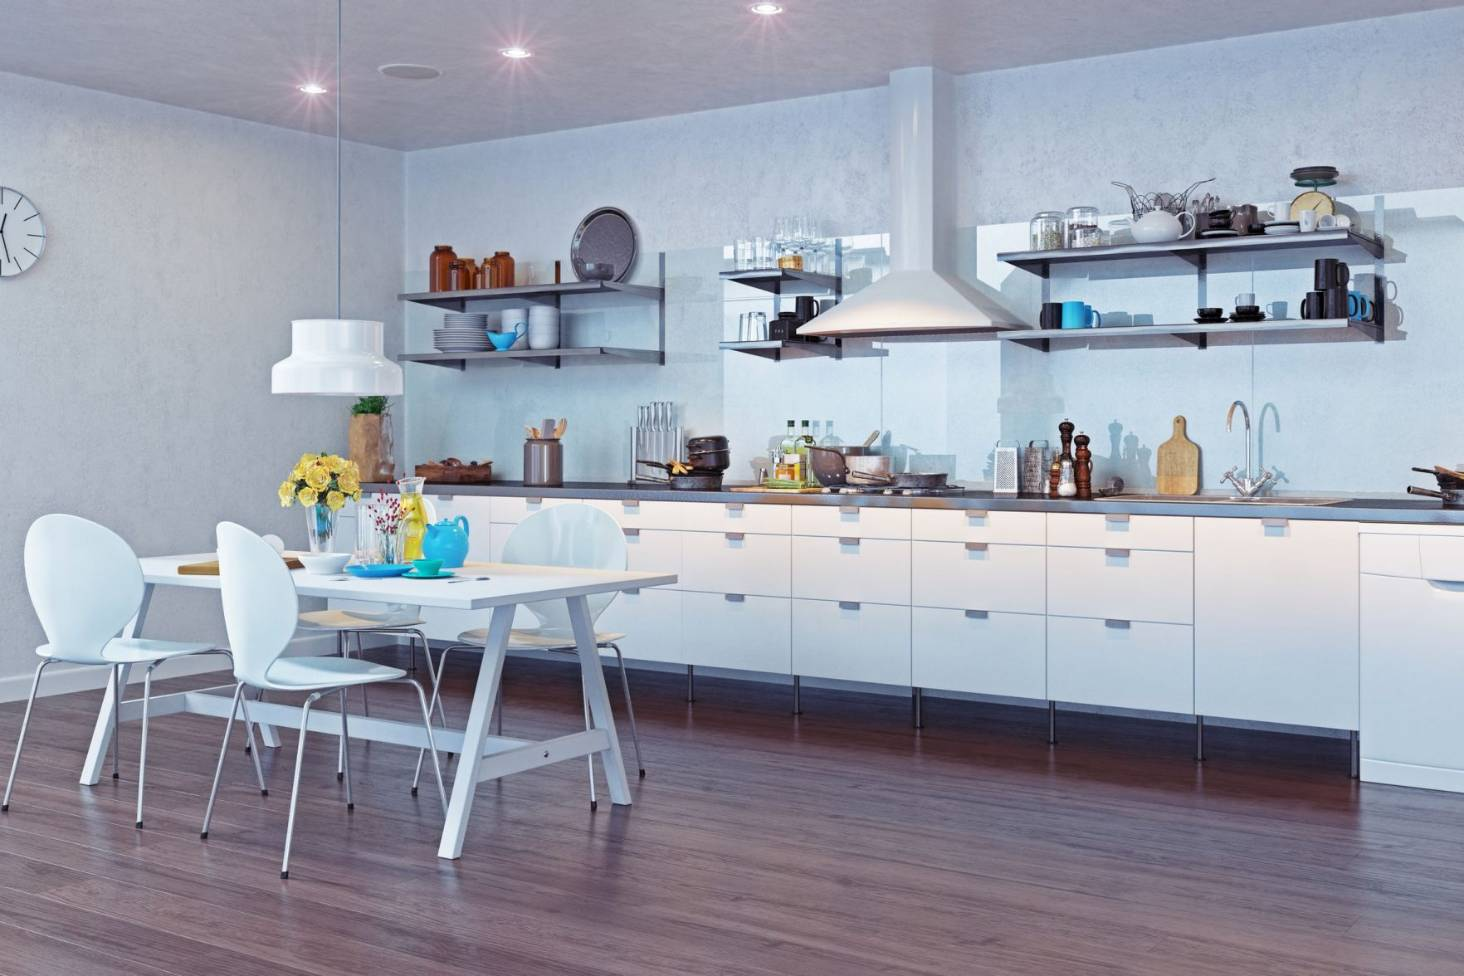 Kitchen design dos and donts